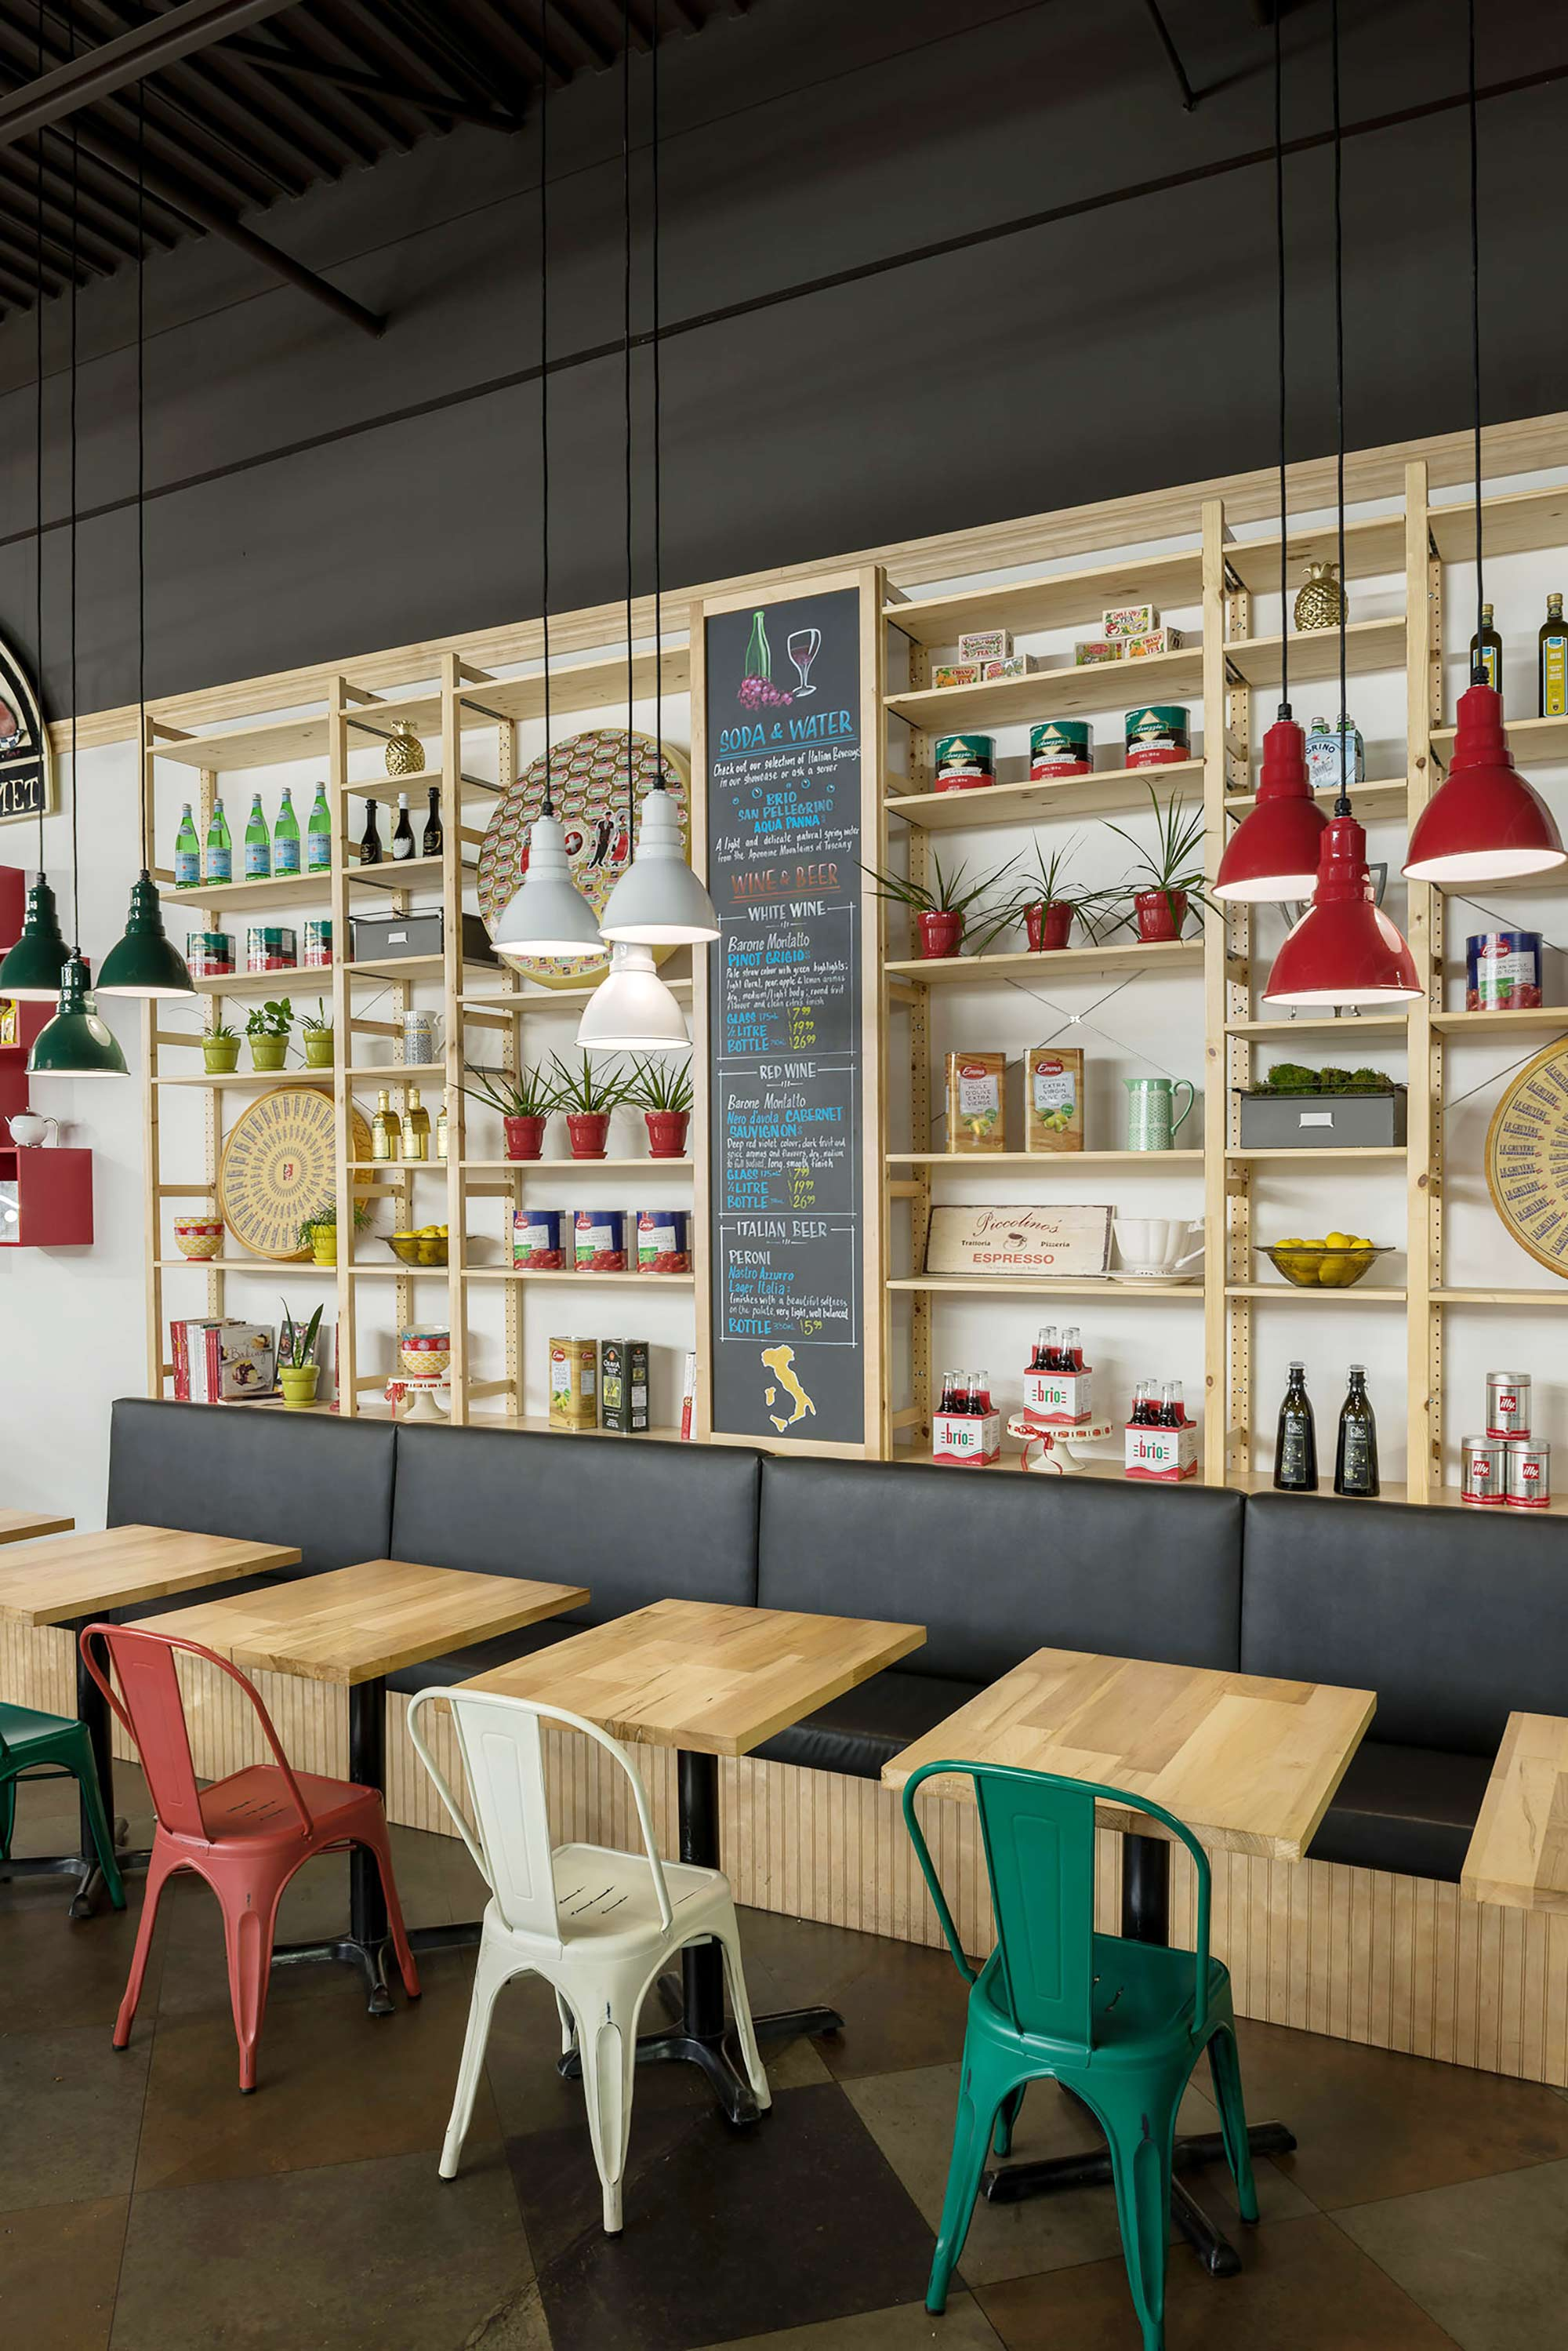 interior-design-retail-restaurant-seating.jpg